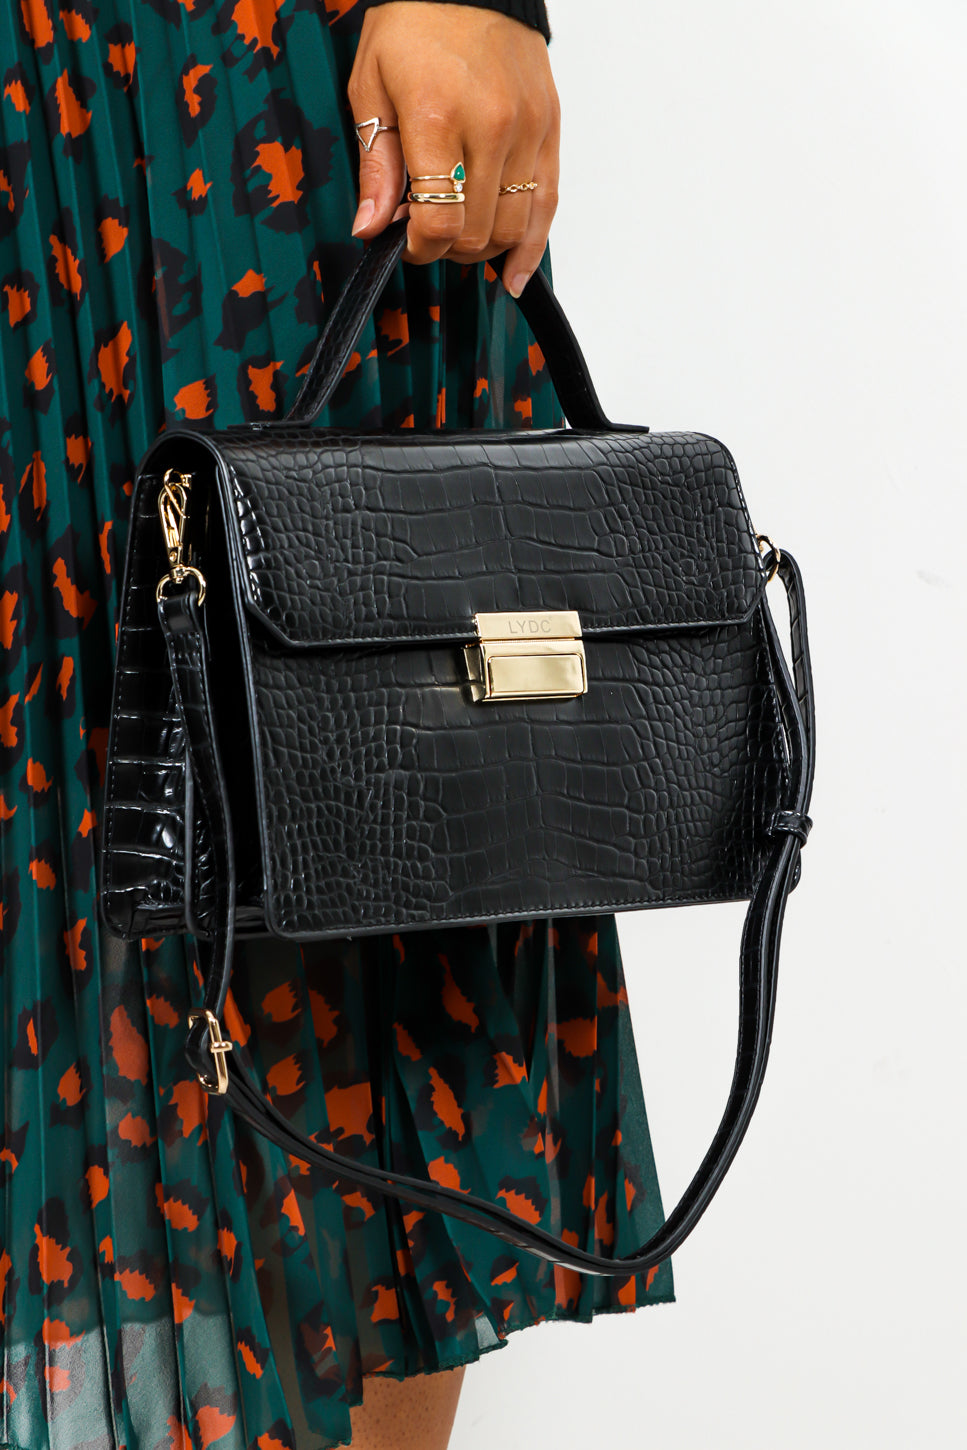 Croc Up - Black Gold Croc Bag